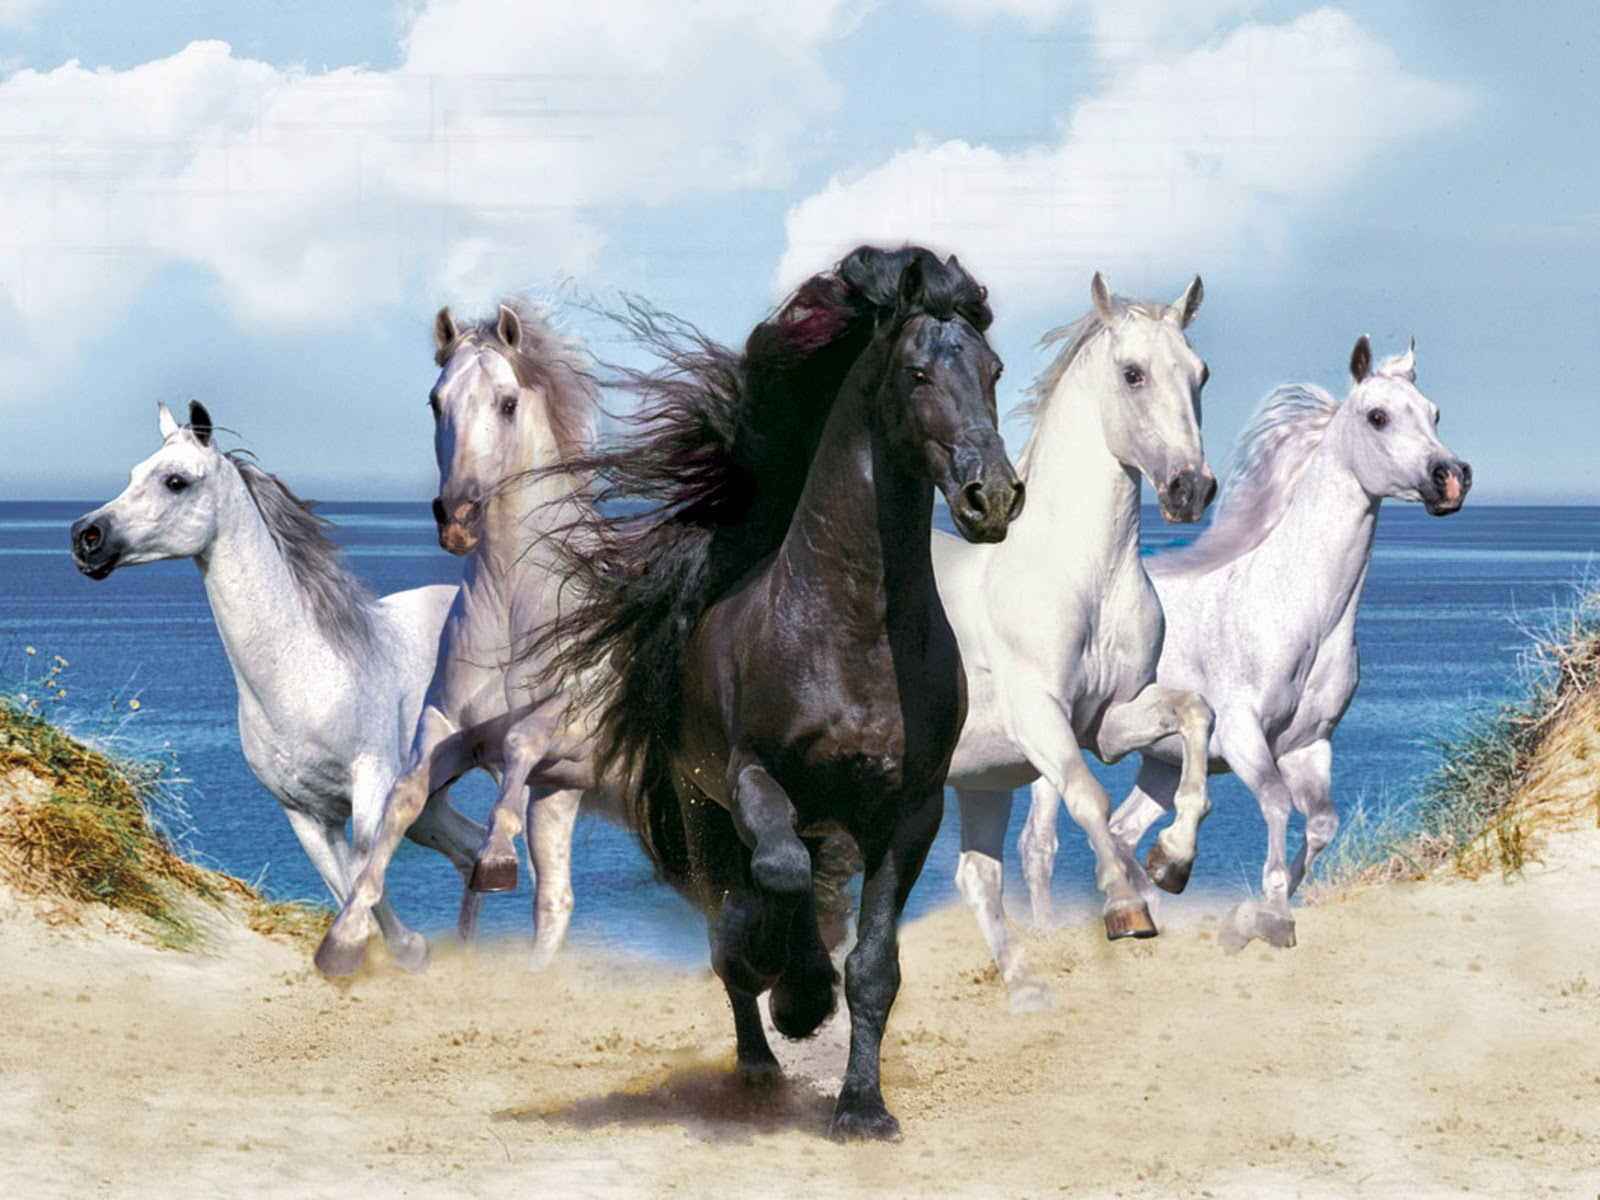 fantasy Beautiful horses